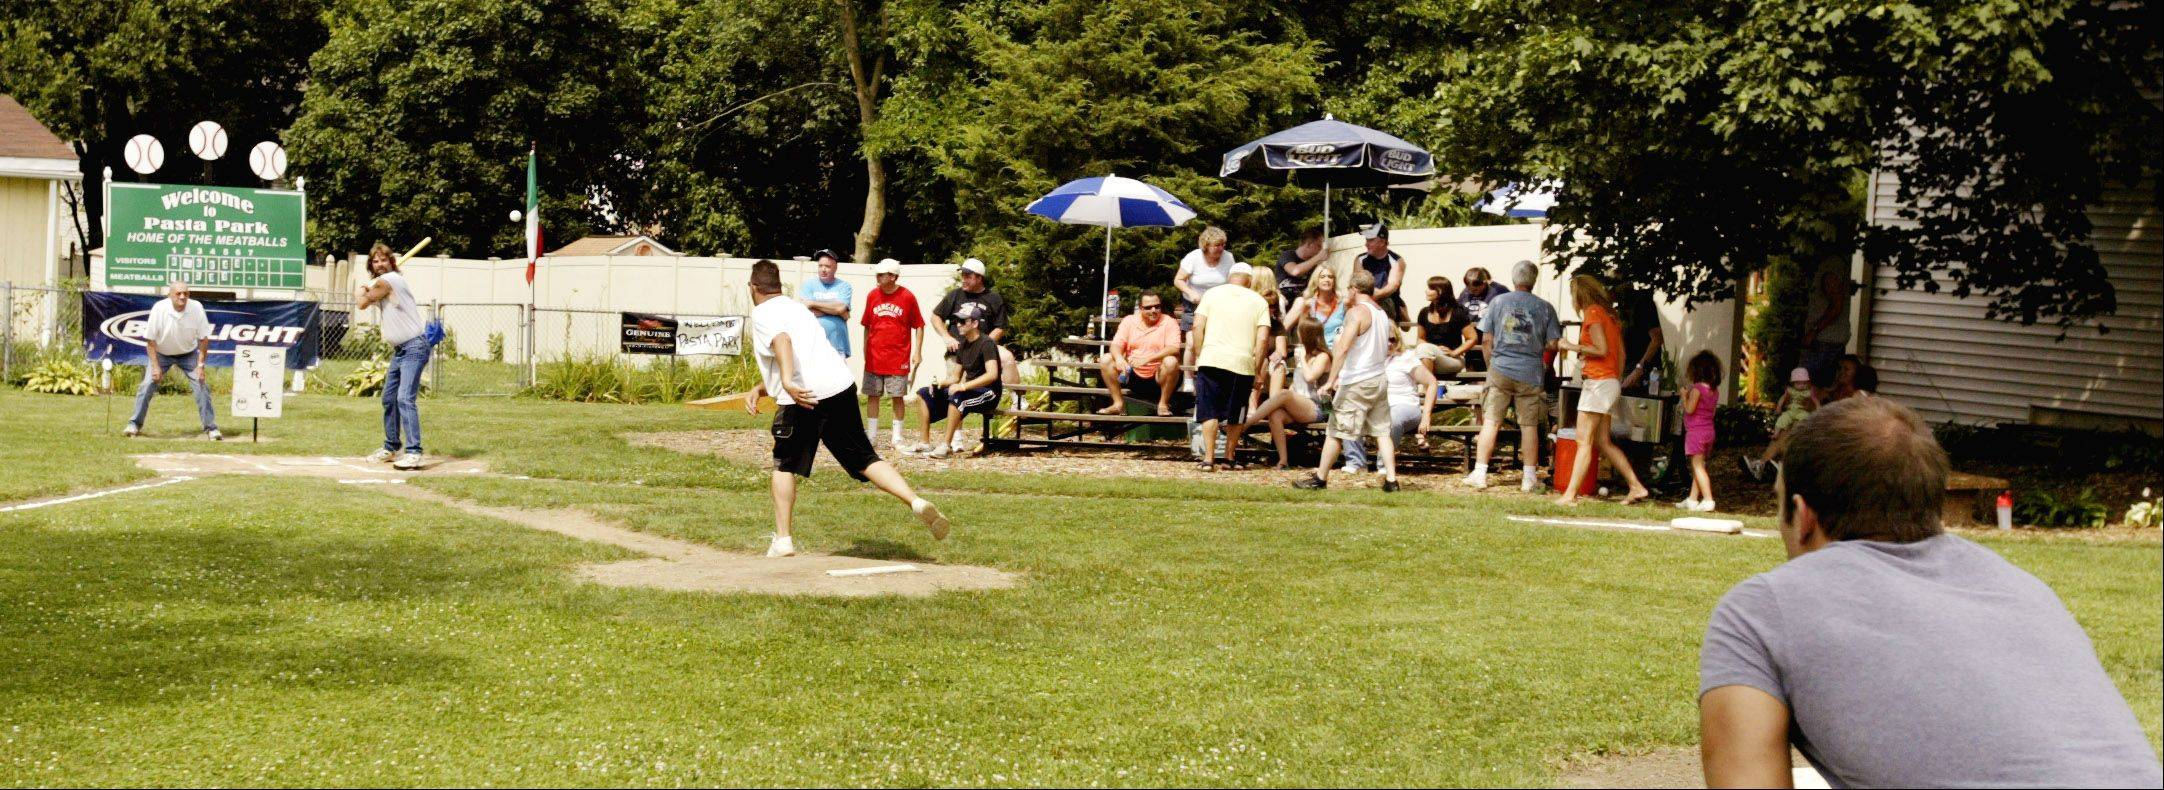 Lombard's new village president, Keith Giagnorio, enjoys playing whiffle ball with friends and neighbors at Pasta Park, the informal ballfield next to his house.